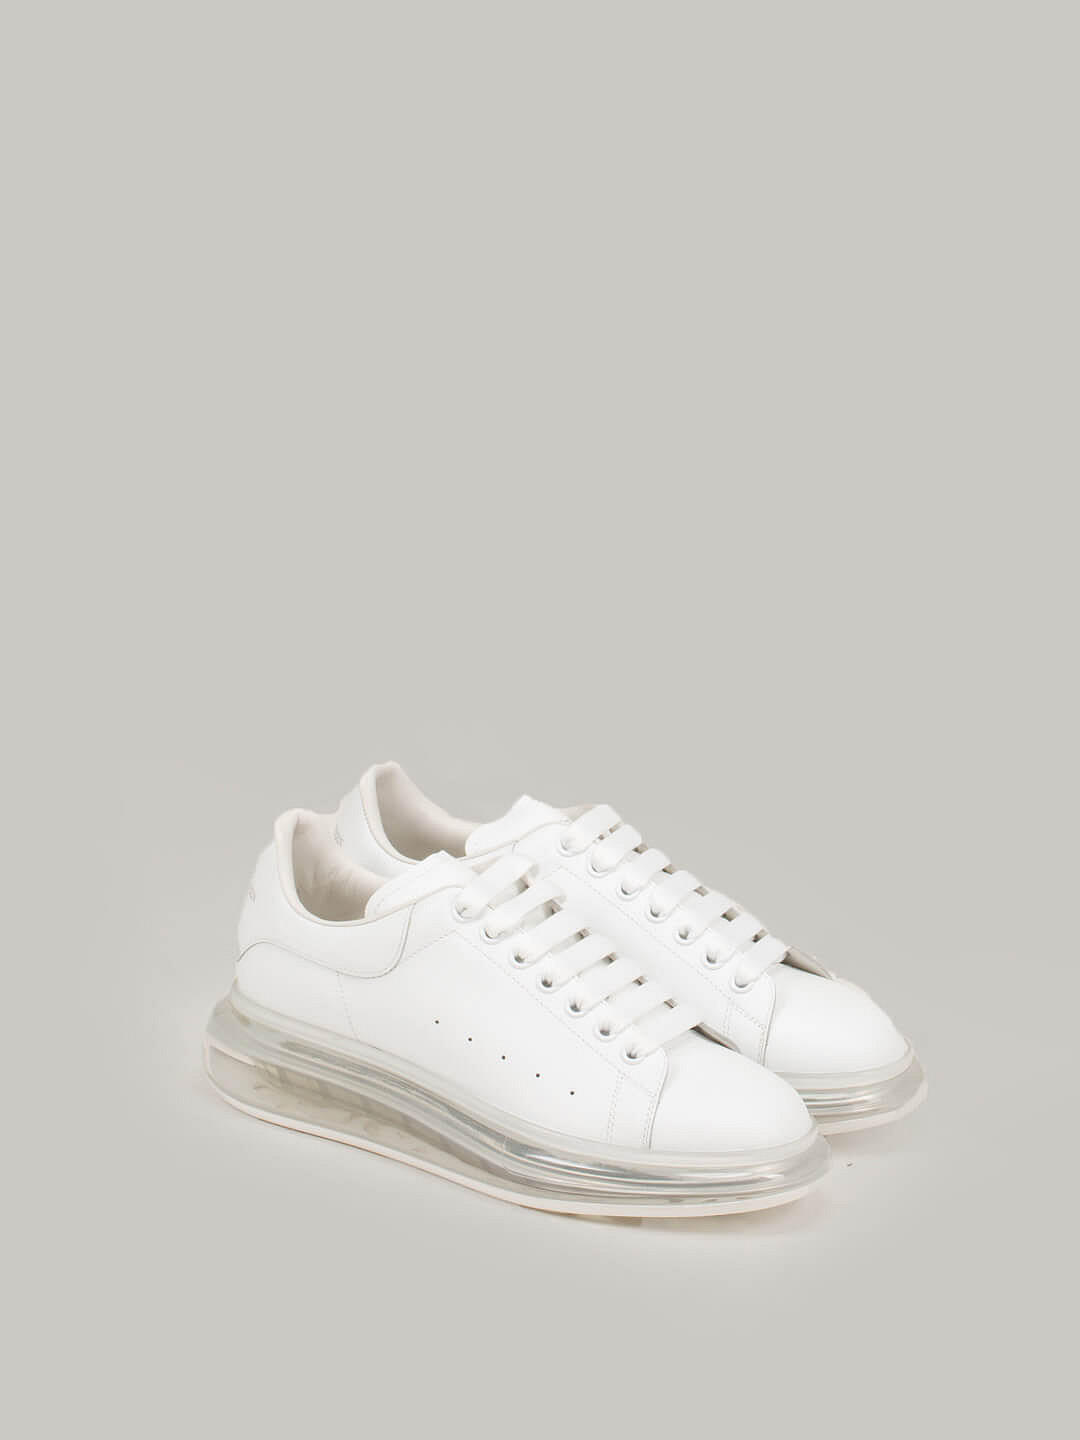 white Low Top Lace Up Sneaker Transparant Sole